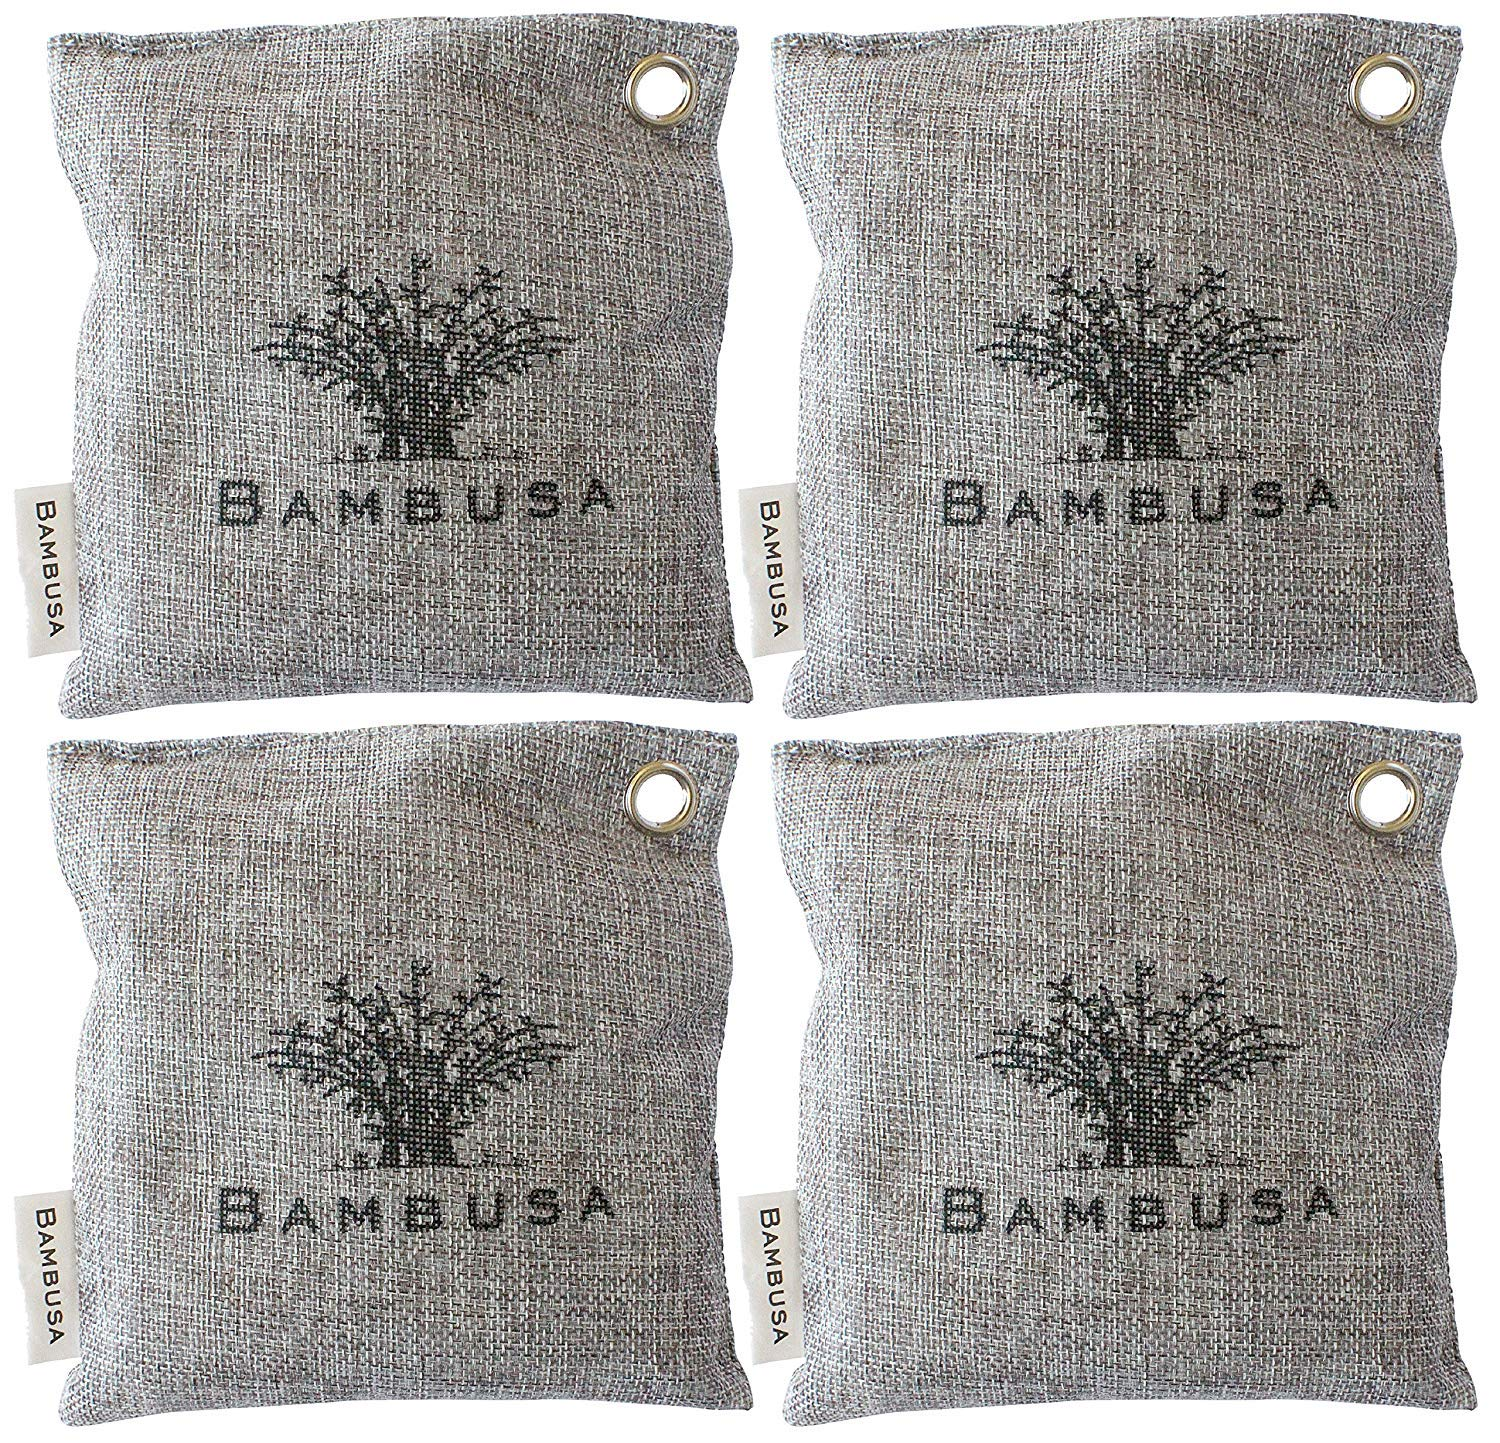 [Bambusa] [Bamboo Activated Charcoal Odor Absorber Bags, Nature Fresh Air Purifier, Deodorizer, Moisture Absorber, Air Purifying Purifier Freshener, and Odor Eliminator for Shoes] (並行輸入品) B07JH6PJNZ One Color 200g